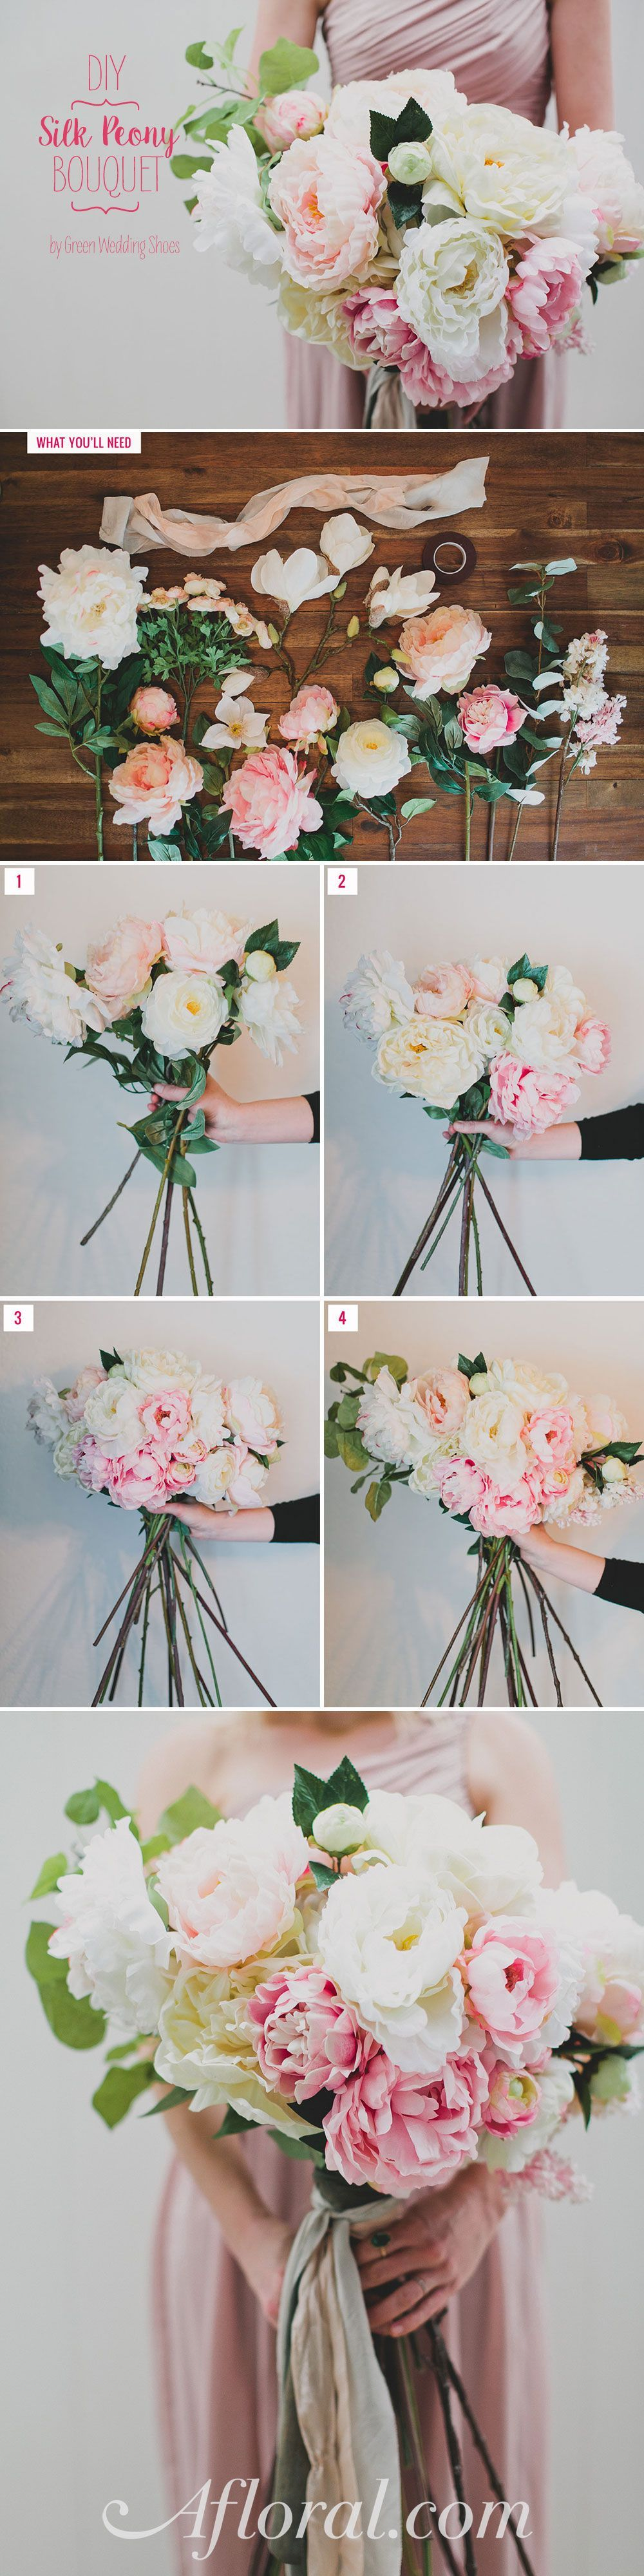 Make your own wedding bouquets with silk flowers from afloral.com ...